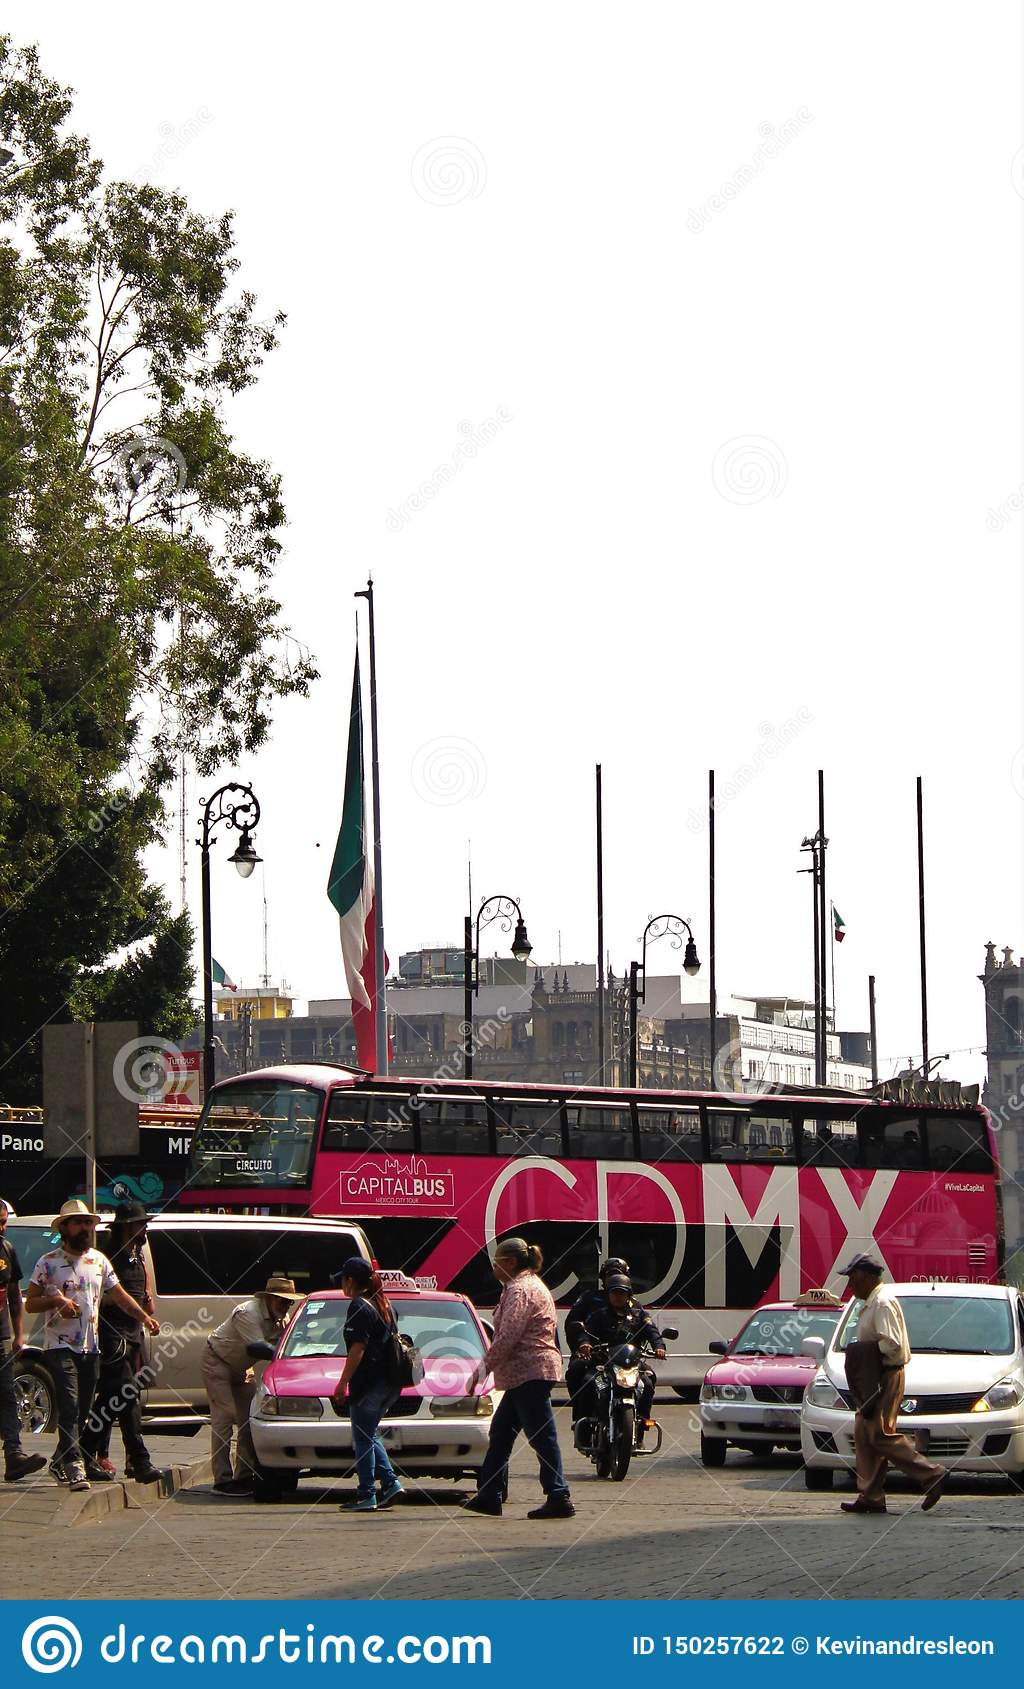 Tourist Bus In Mexico City Editorial Photography. Image Of